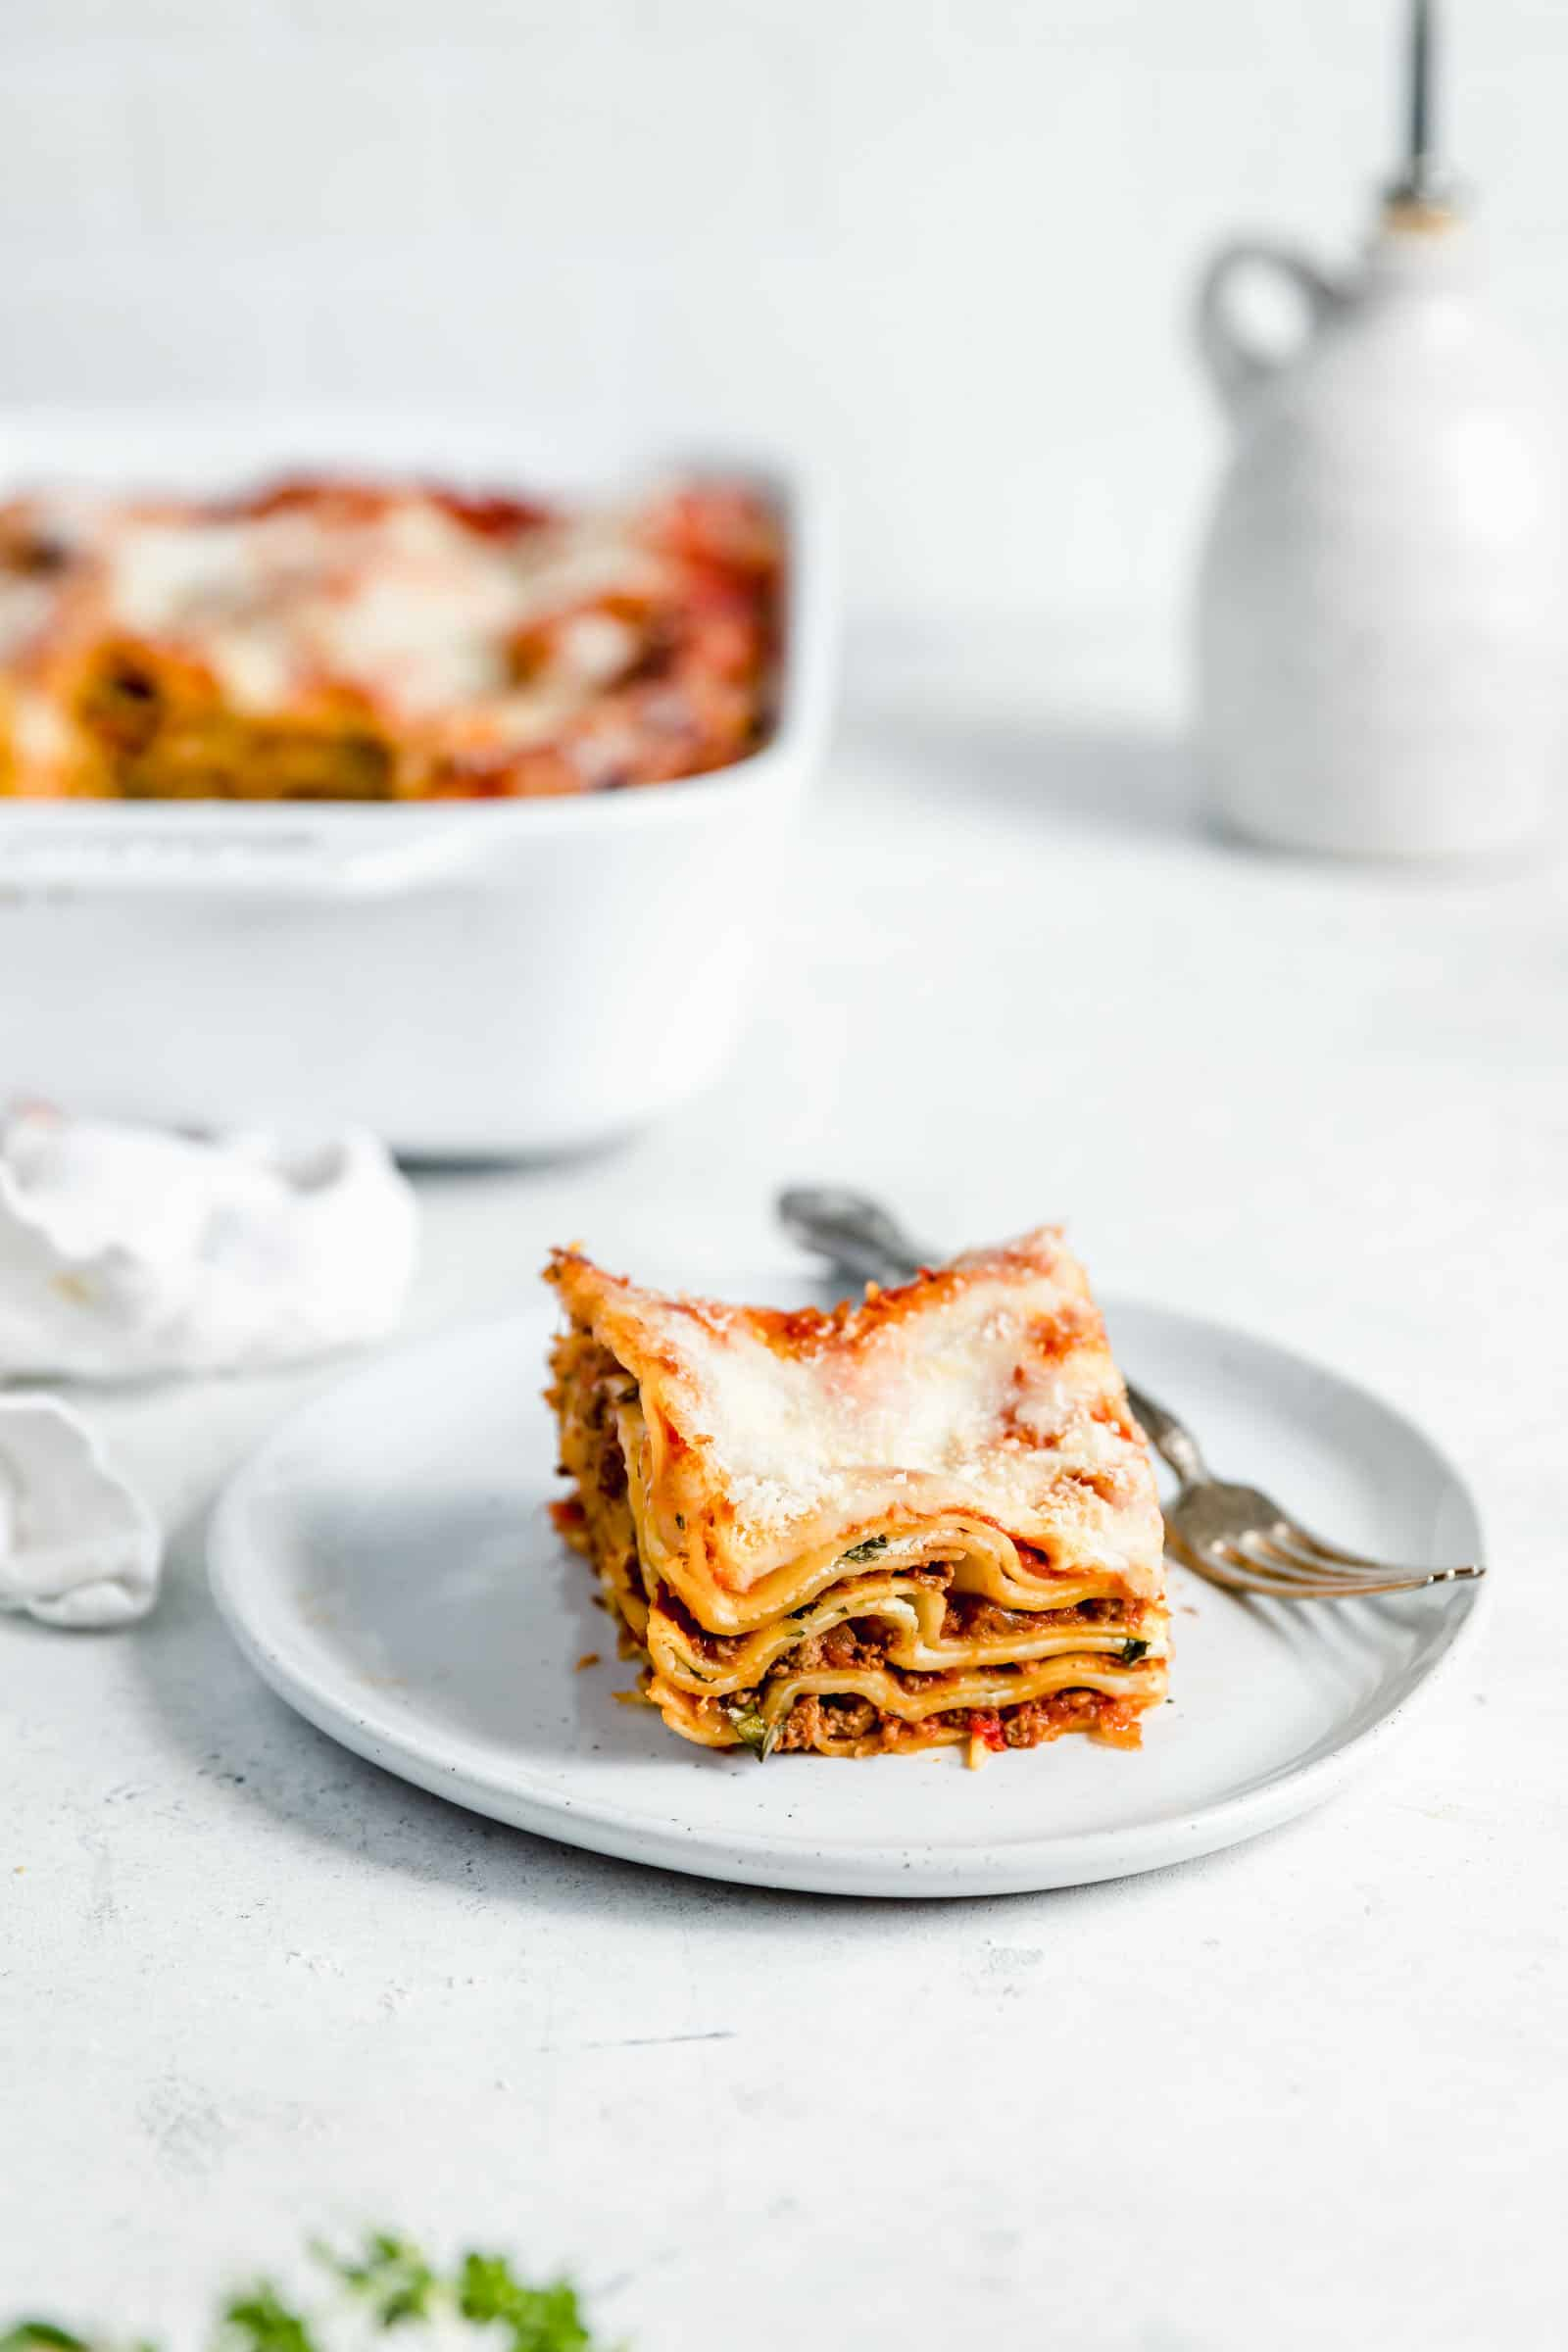 slice of meat lasagna on a plate